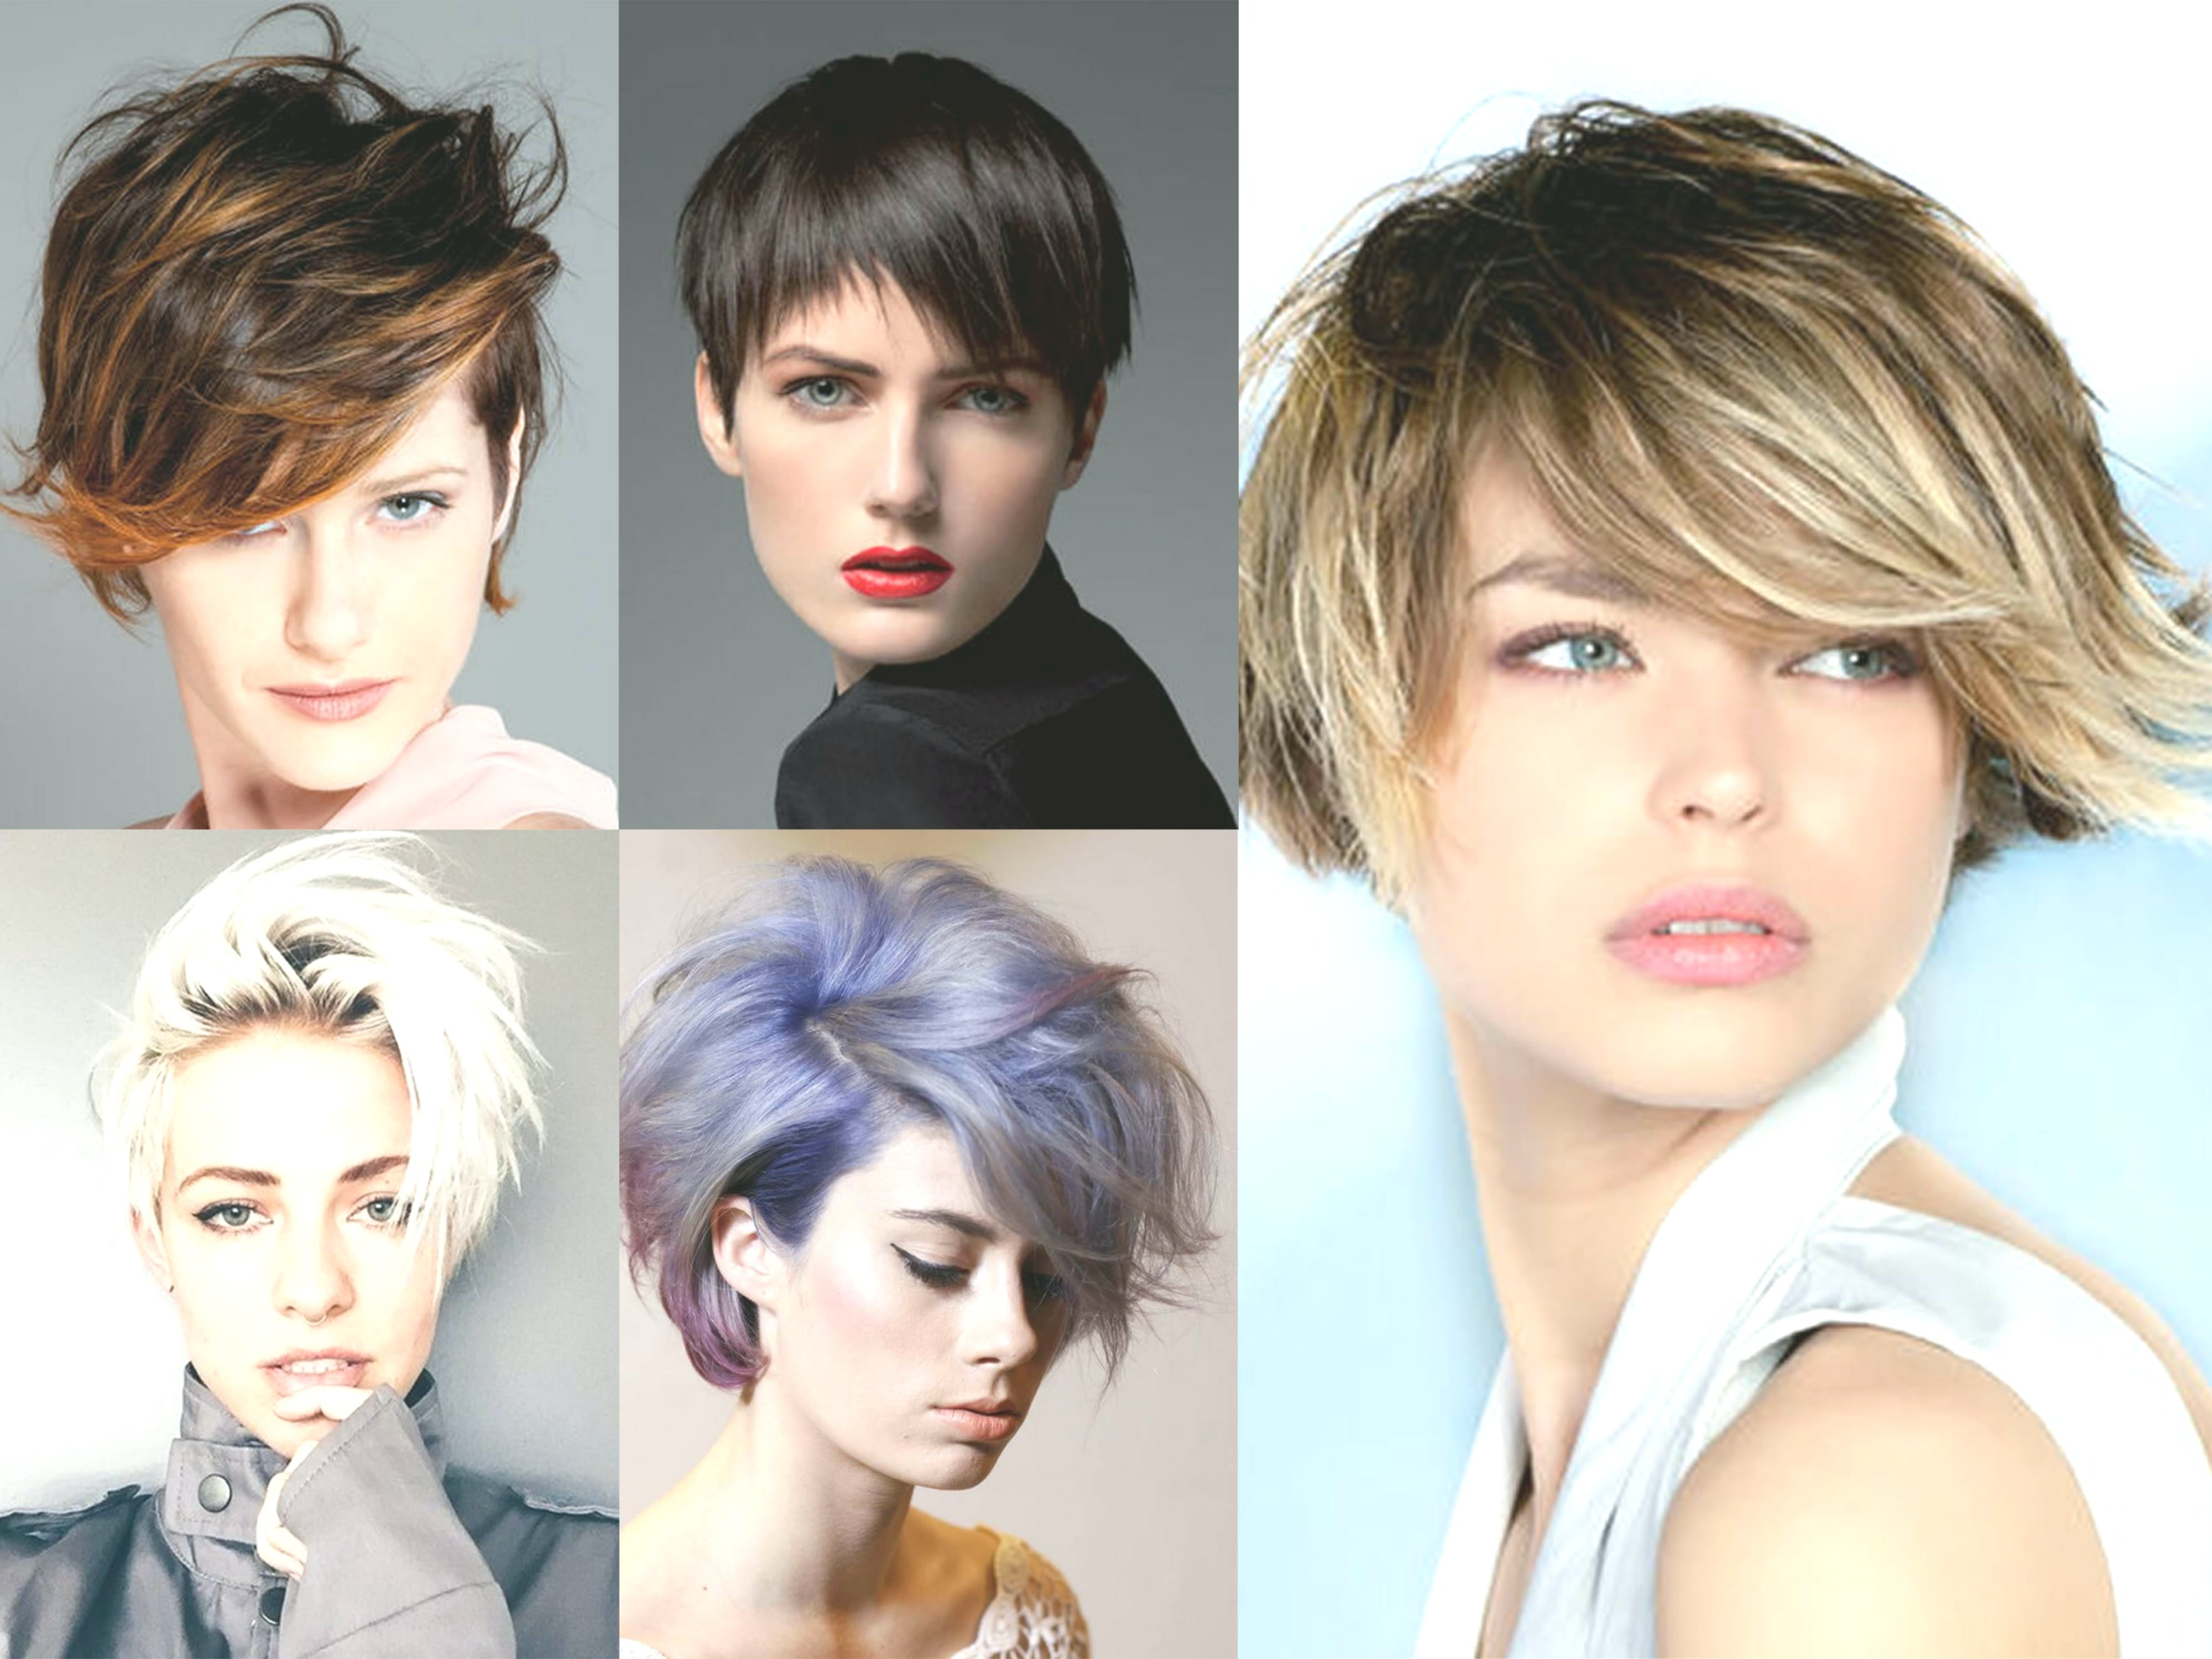 White hair color Portrait-Inspirational White hair color wall